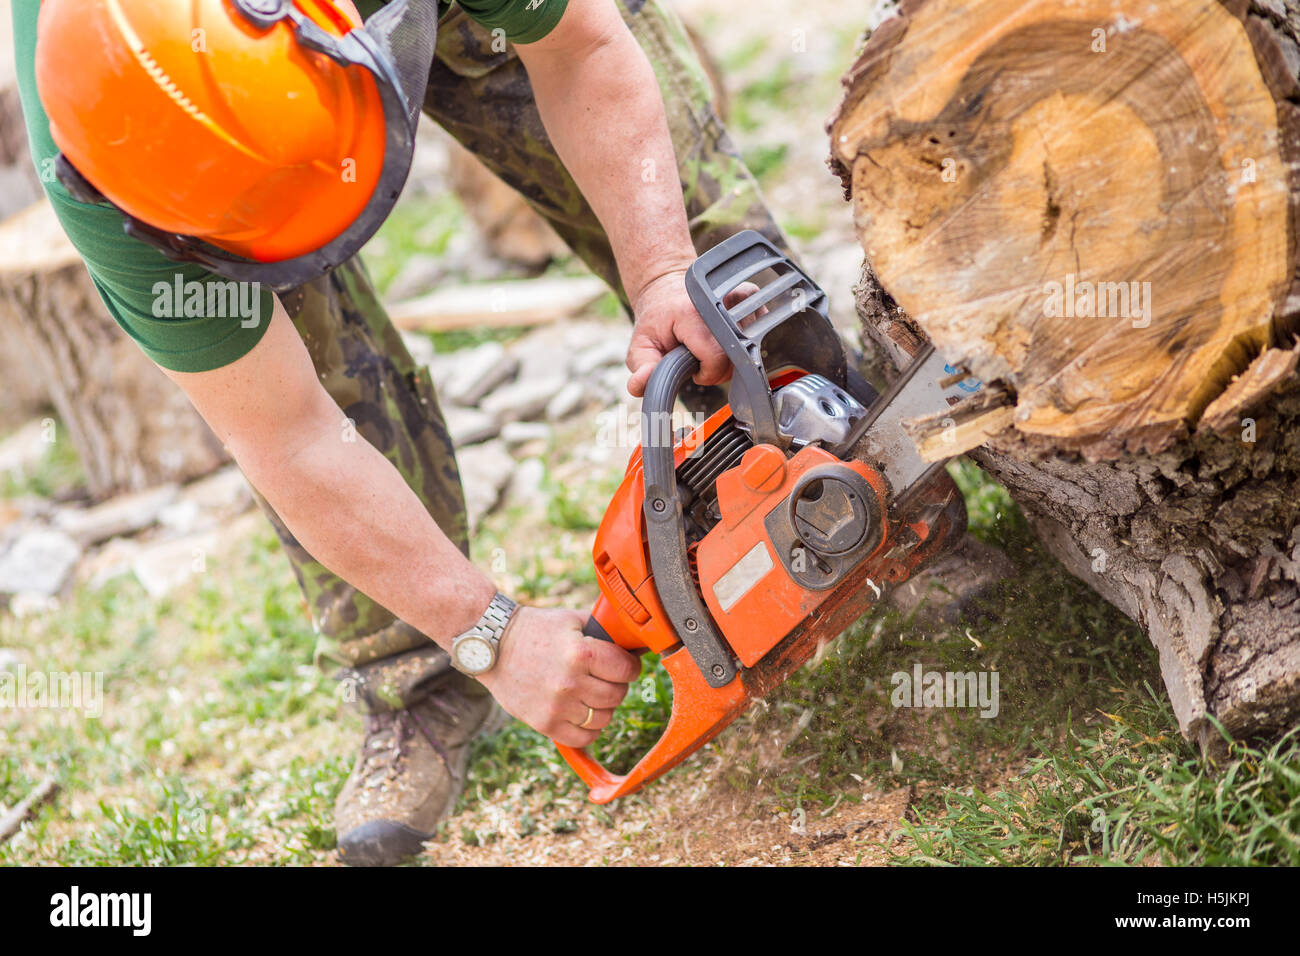 Worked cutting a tree with a chainsaw Stock Photo